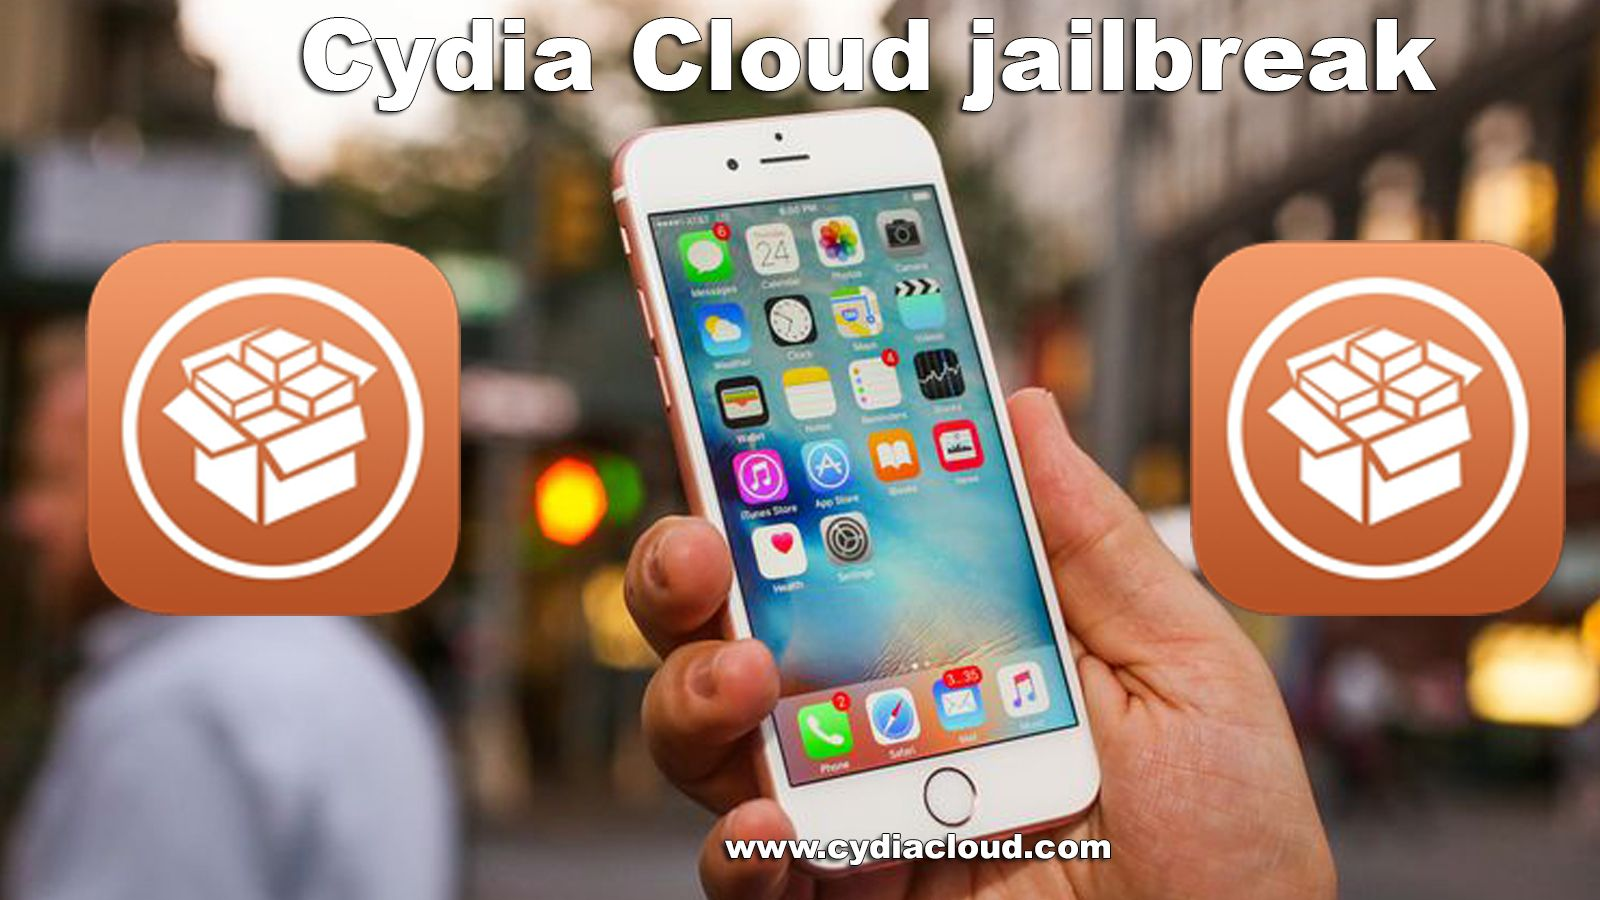 Things you most likely didn't know about Cydia Cloud